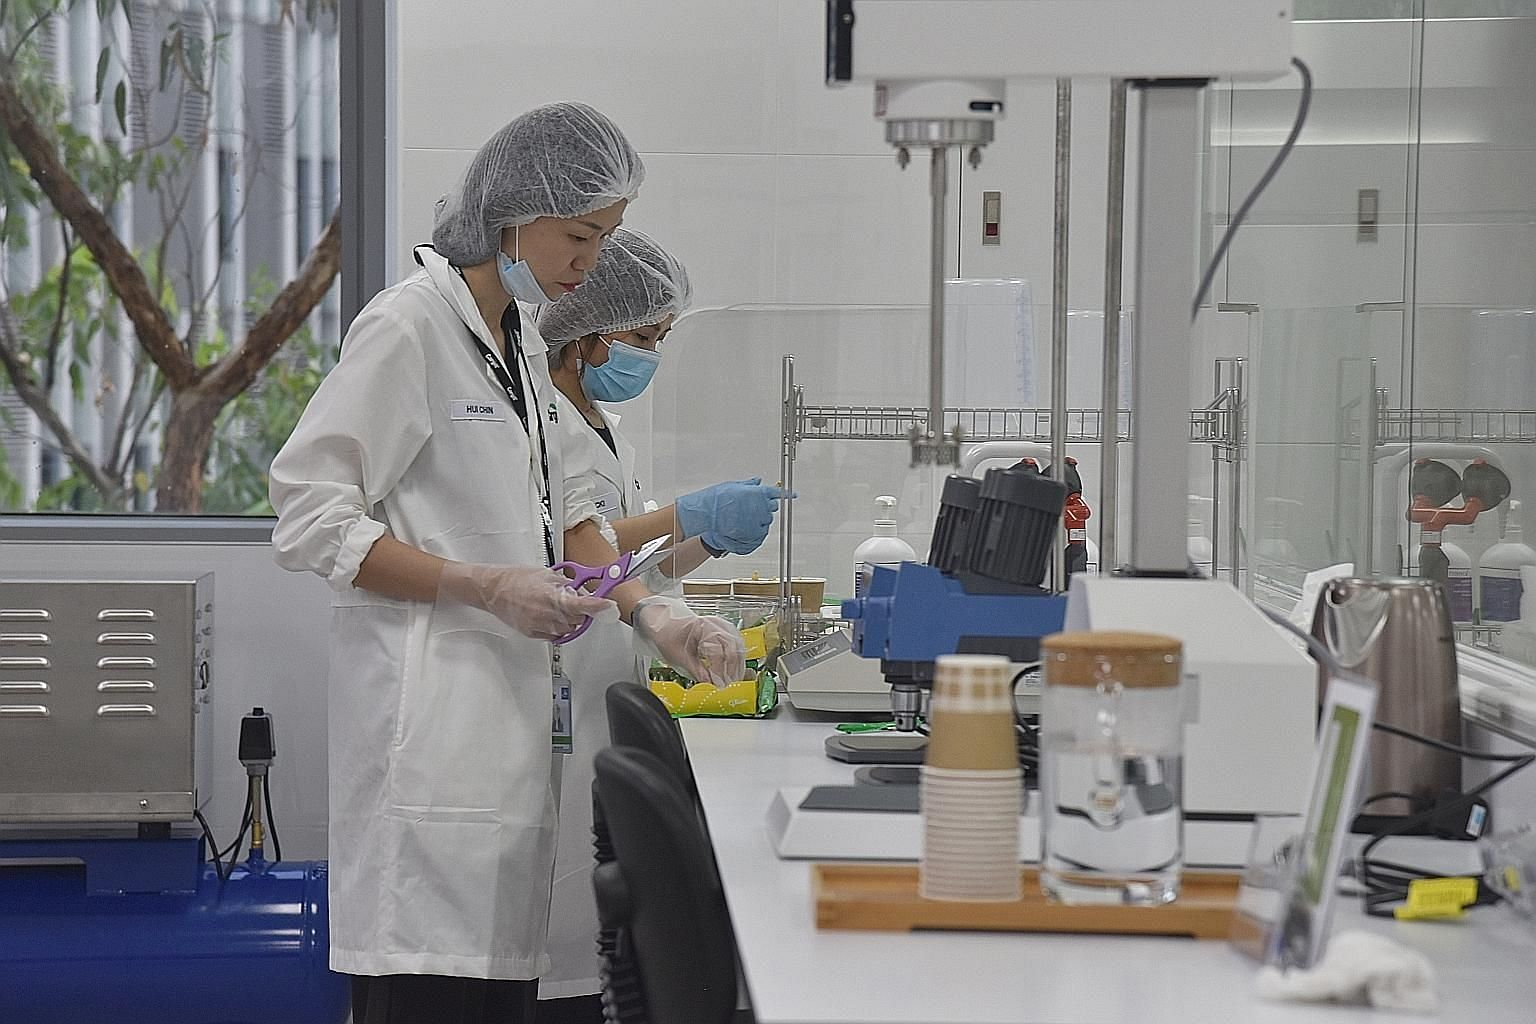 Staff at the Cargill centre preparing samples of food products during a tour of the facility.